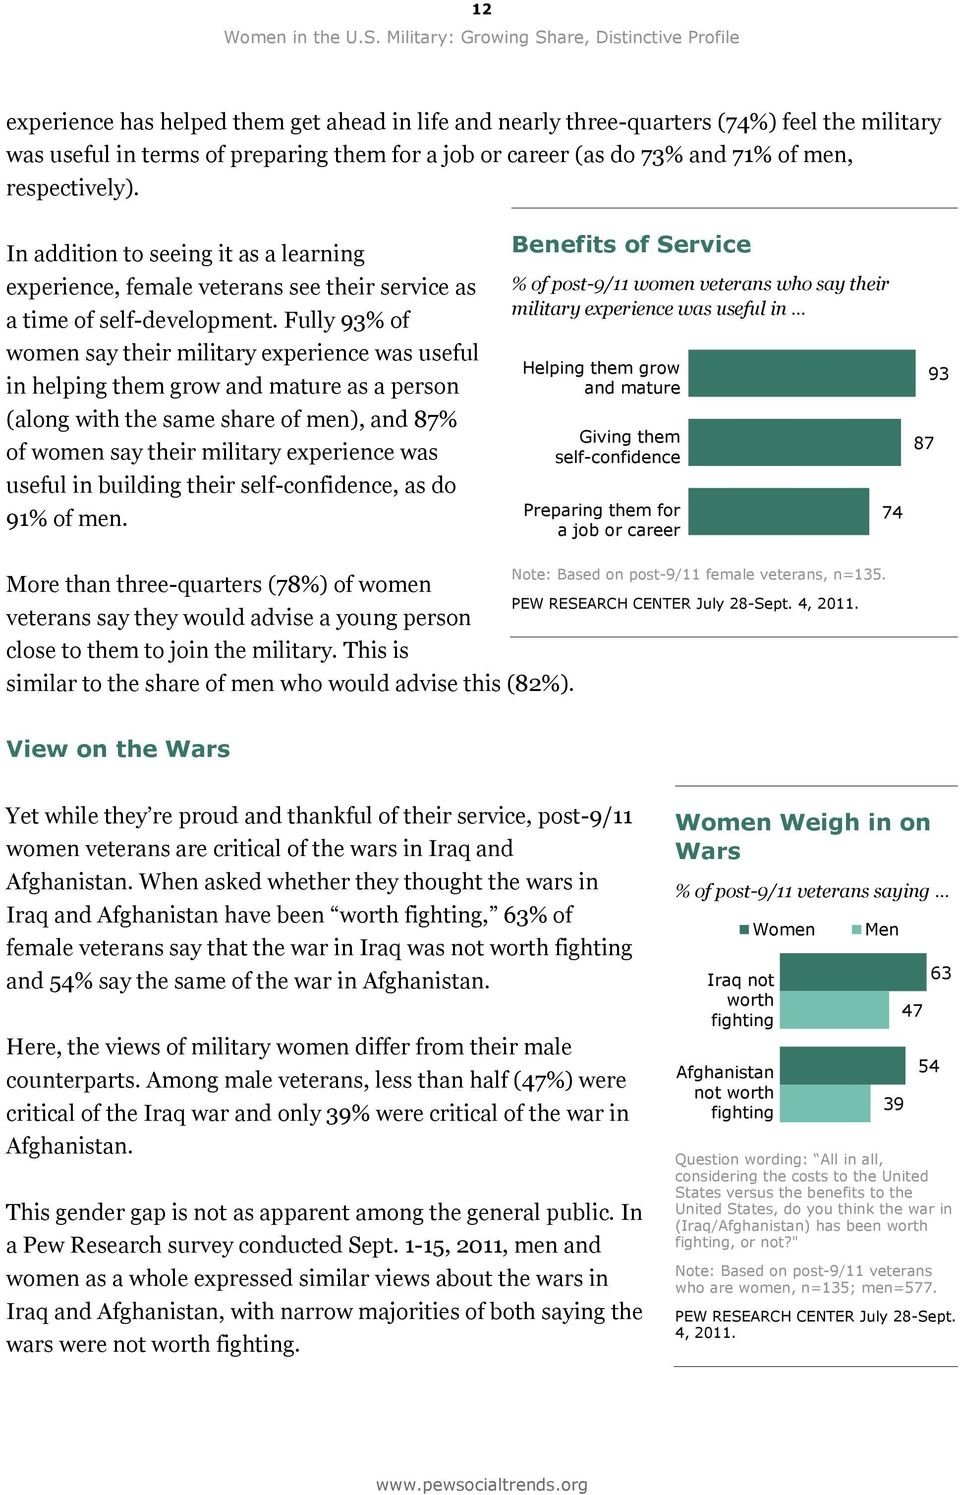 (as do 73% and 71% of men, respectively). In addition to seeing it as a learning experience, female veterans see their service as a time of self-development.